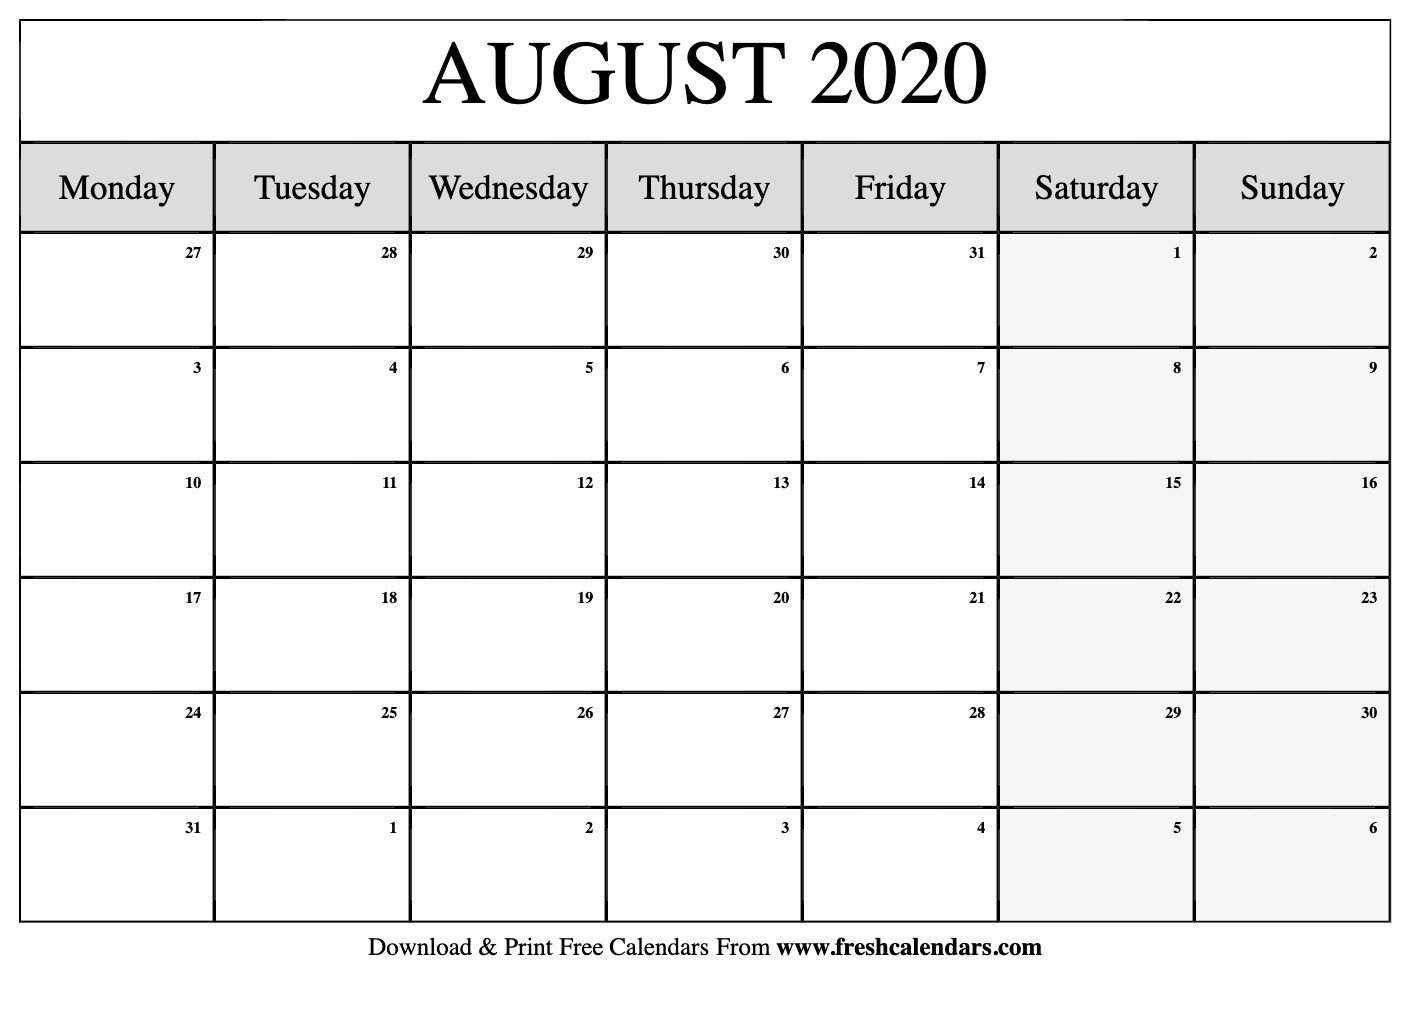 August 2020 Calendar Printable - Fresh Calendars  Calendar 2020 August To December Template